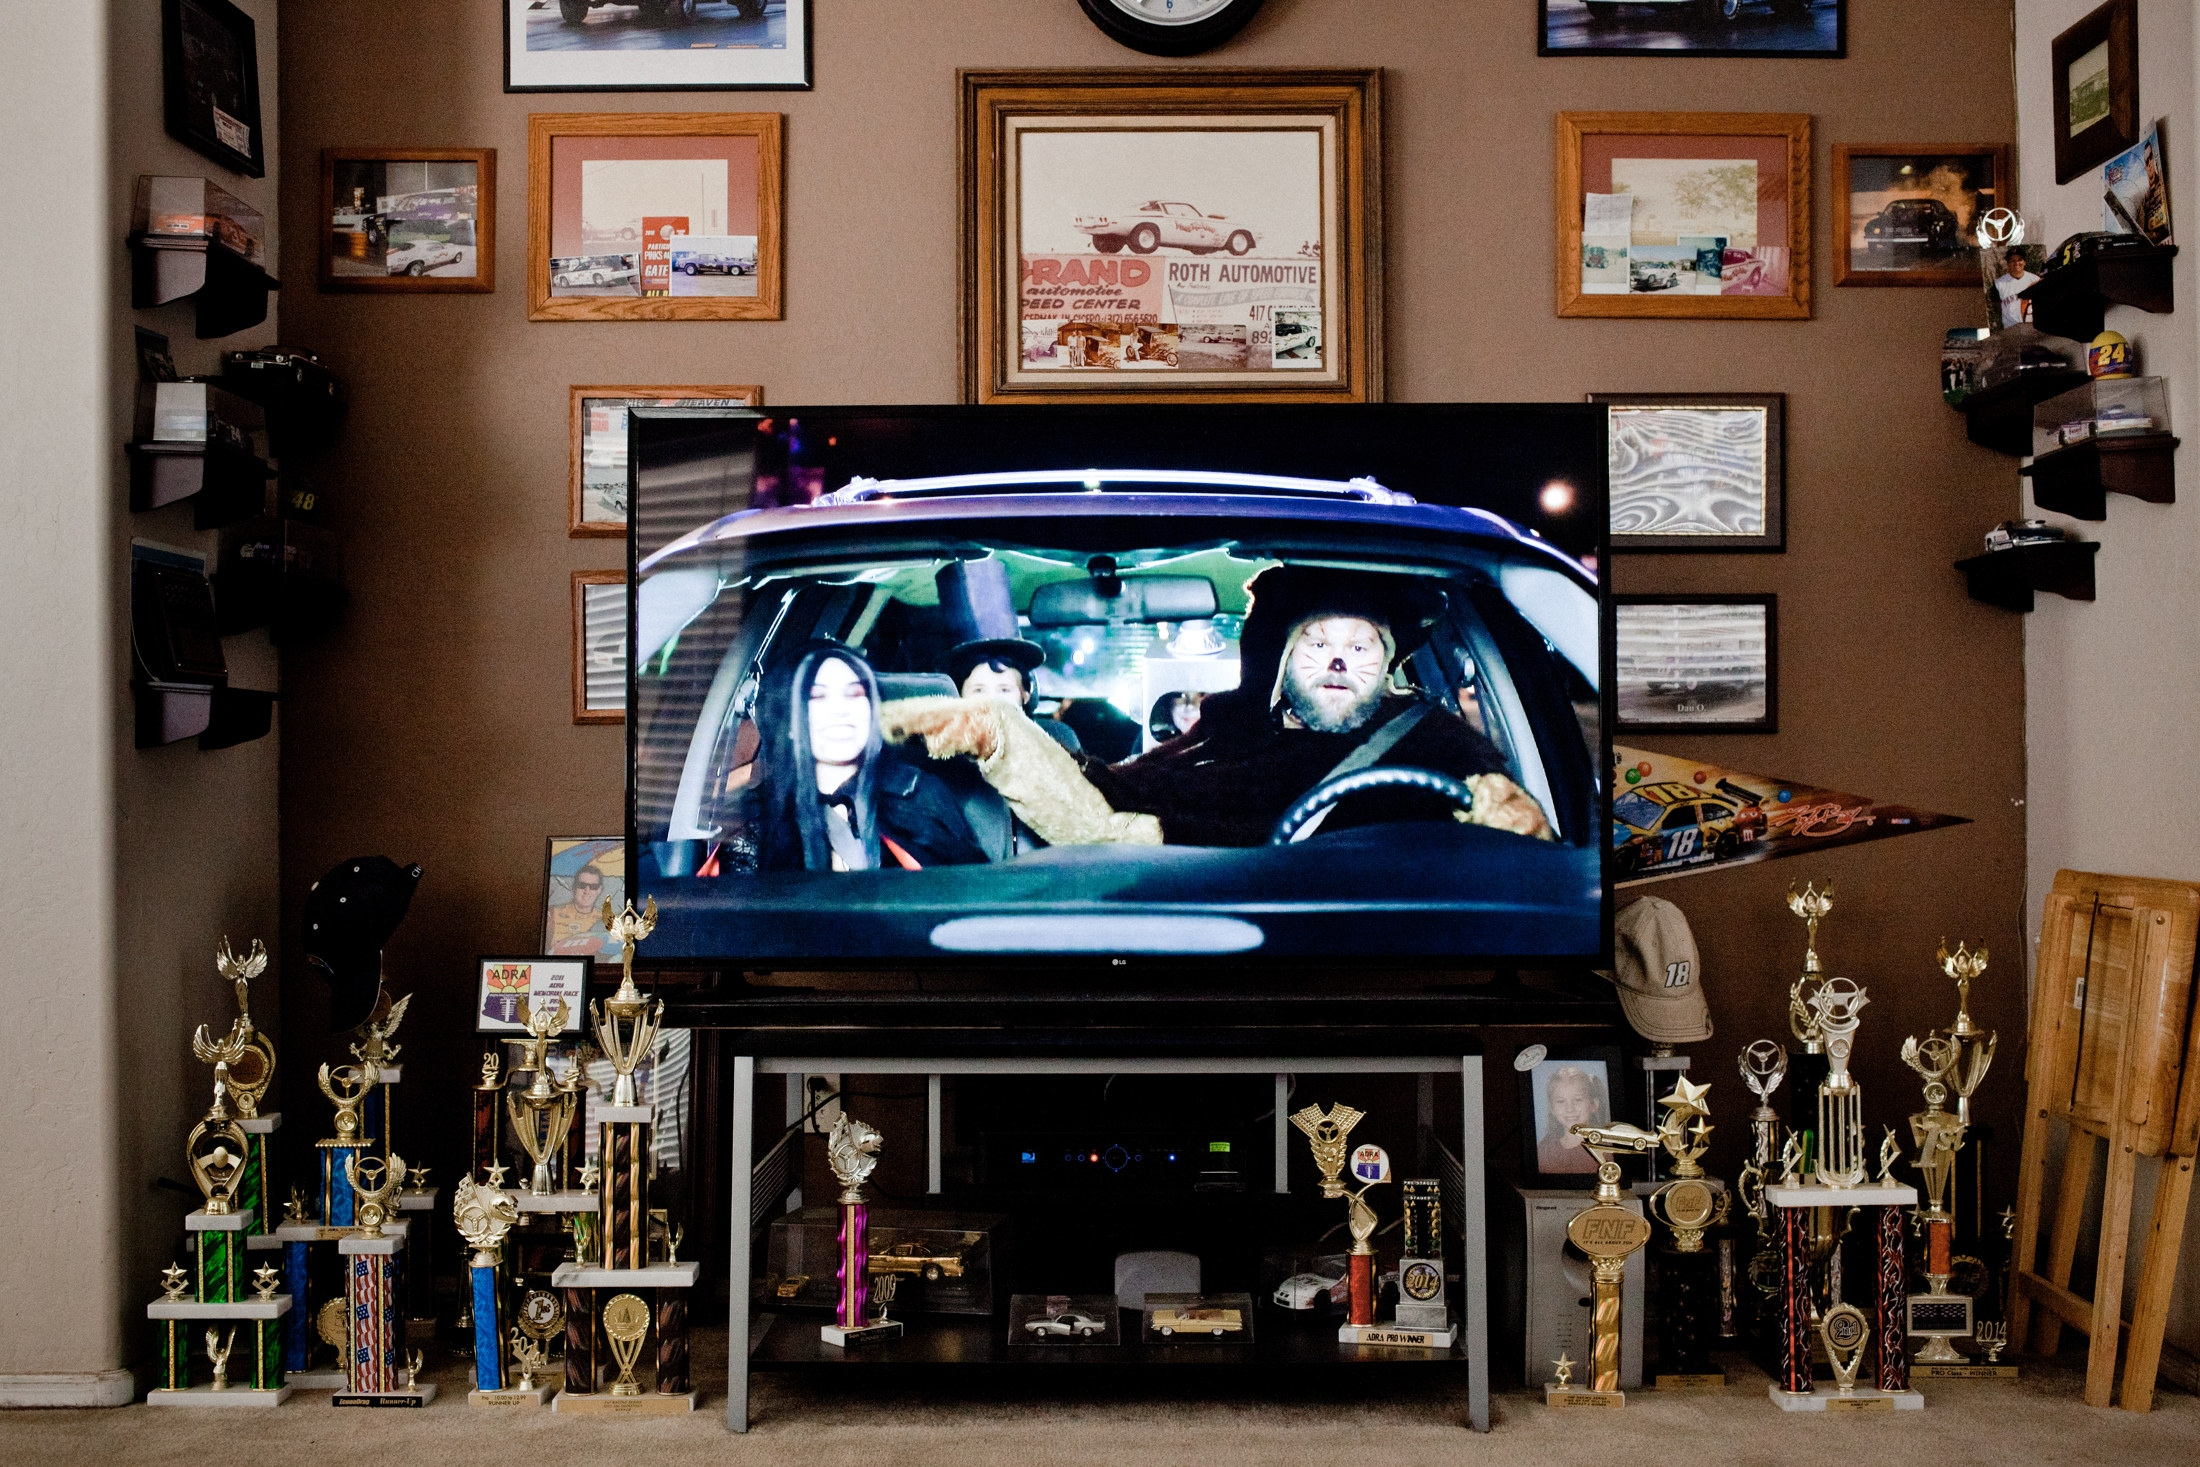 Car racing trophies belonging to Dan Olszewski are standing next the tv set showing a commercial. Olszewski is a hero of vintage car racing, who ofter races at at the Tucson Dragway.